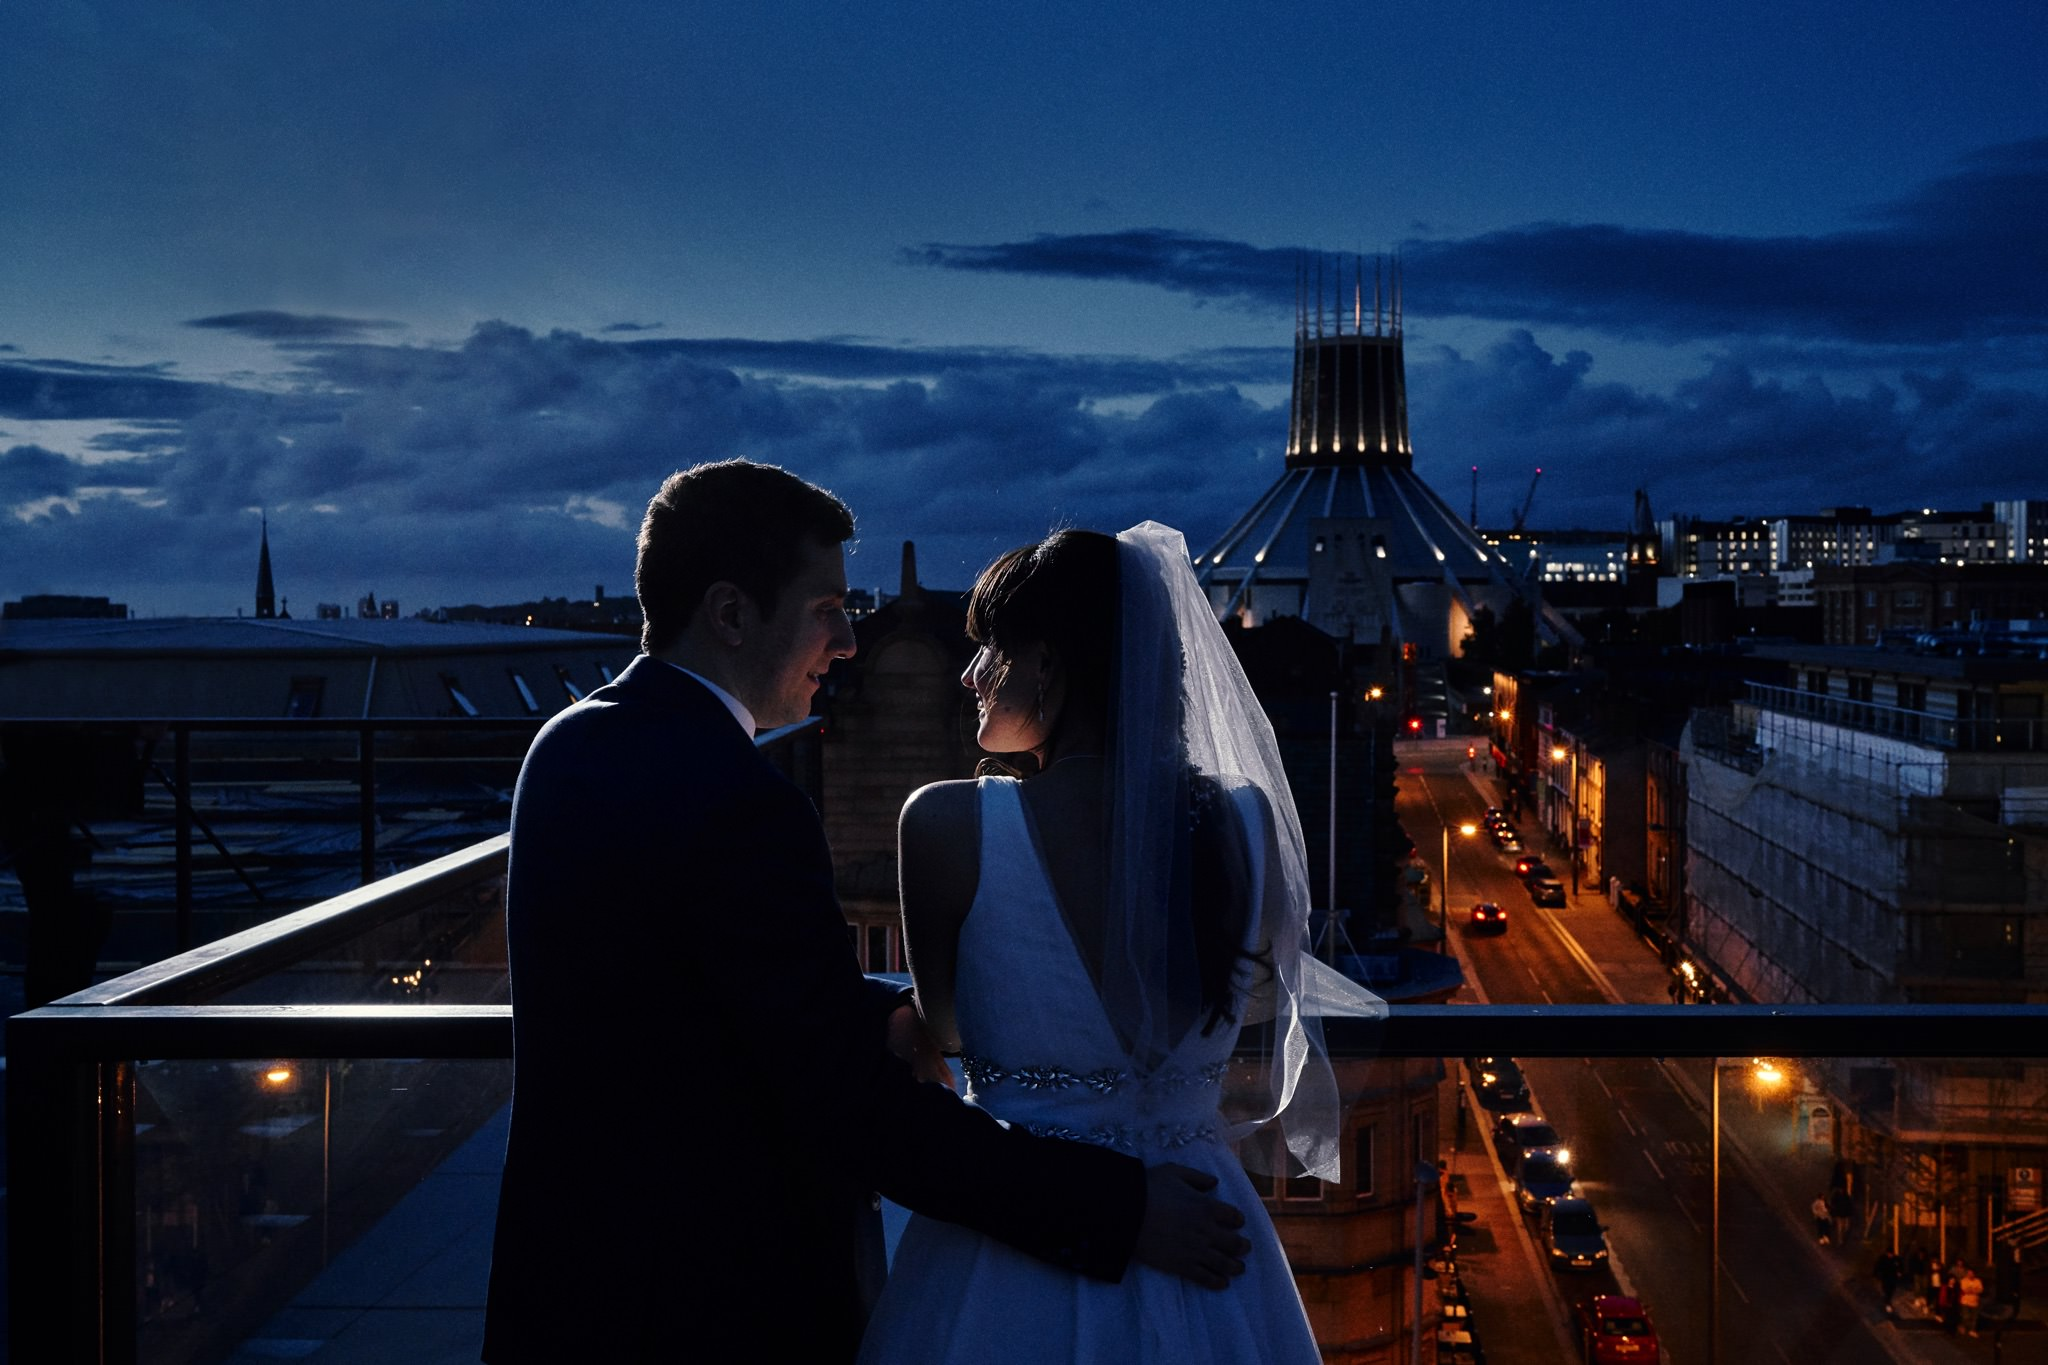 Moonlight wedding views over Liverpool